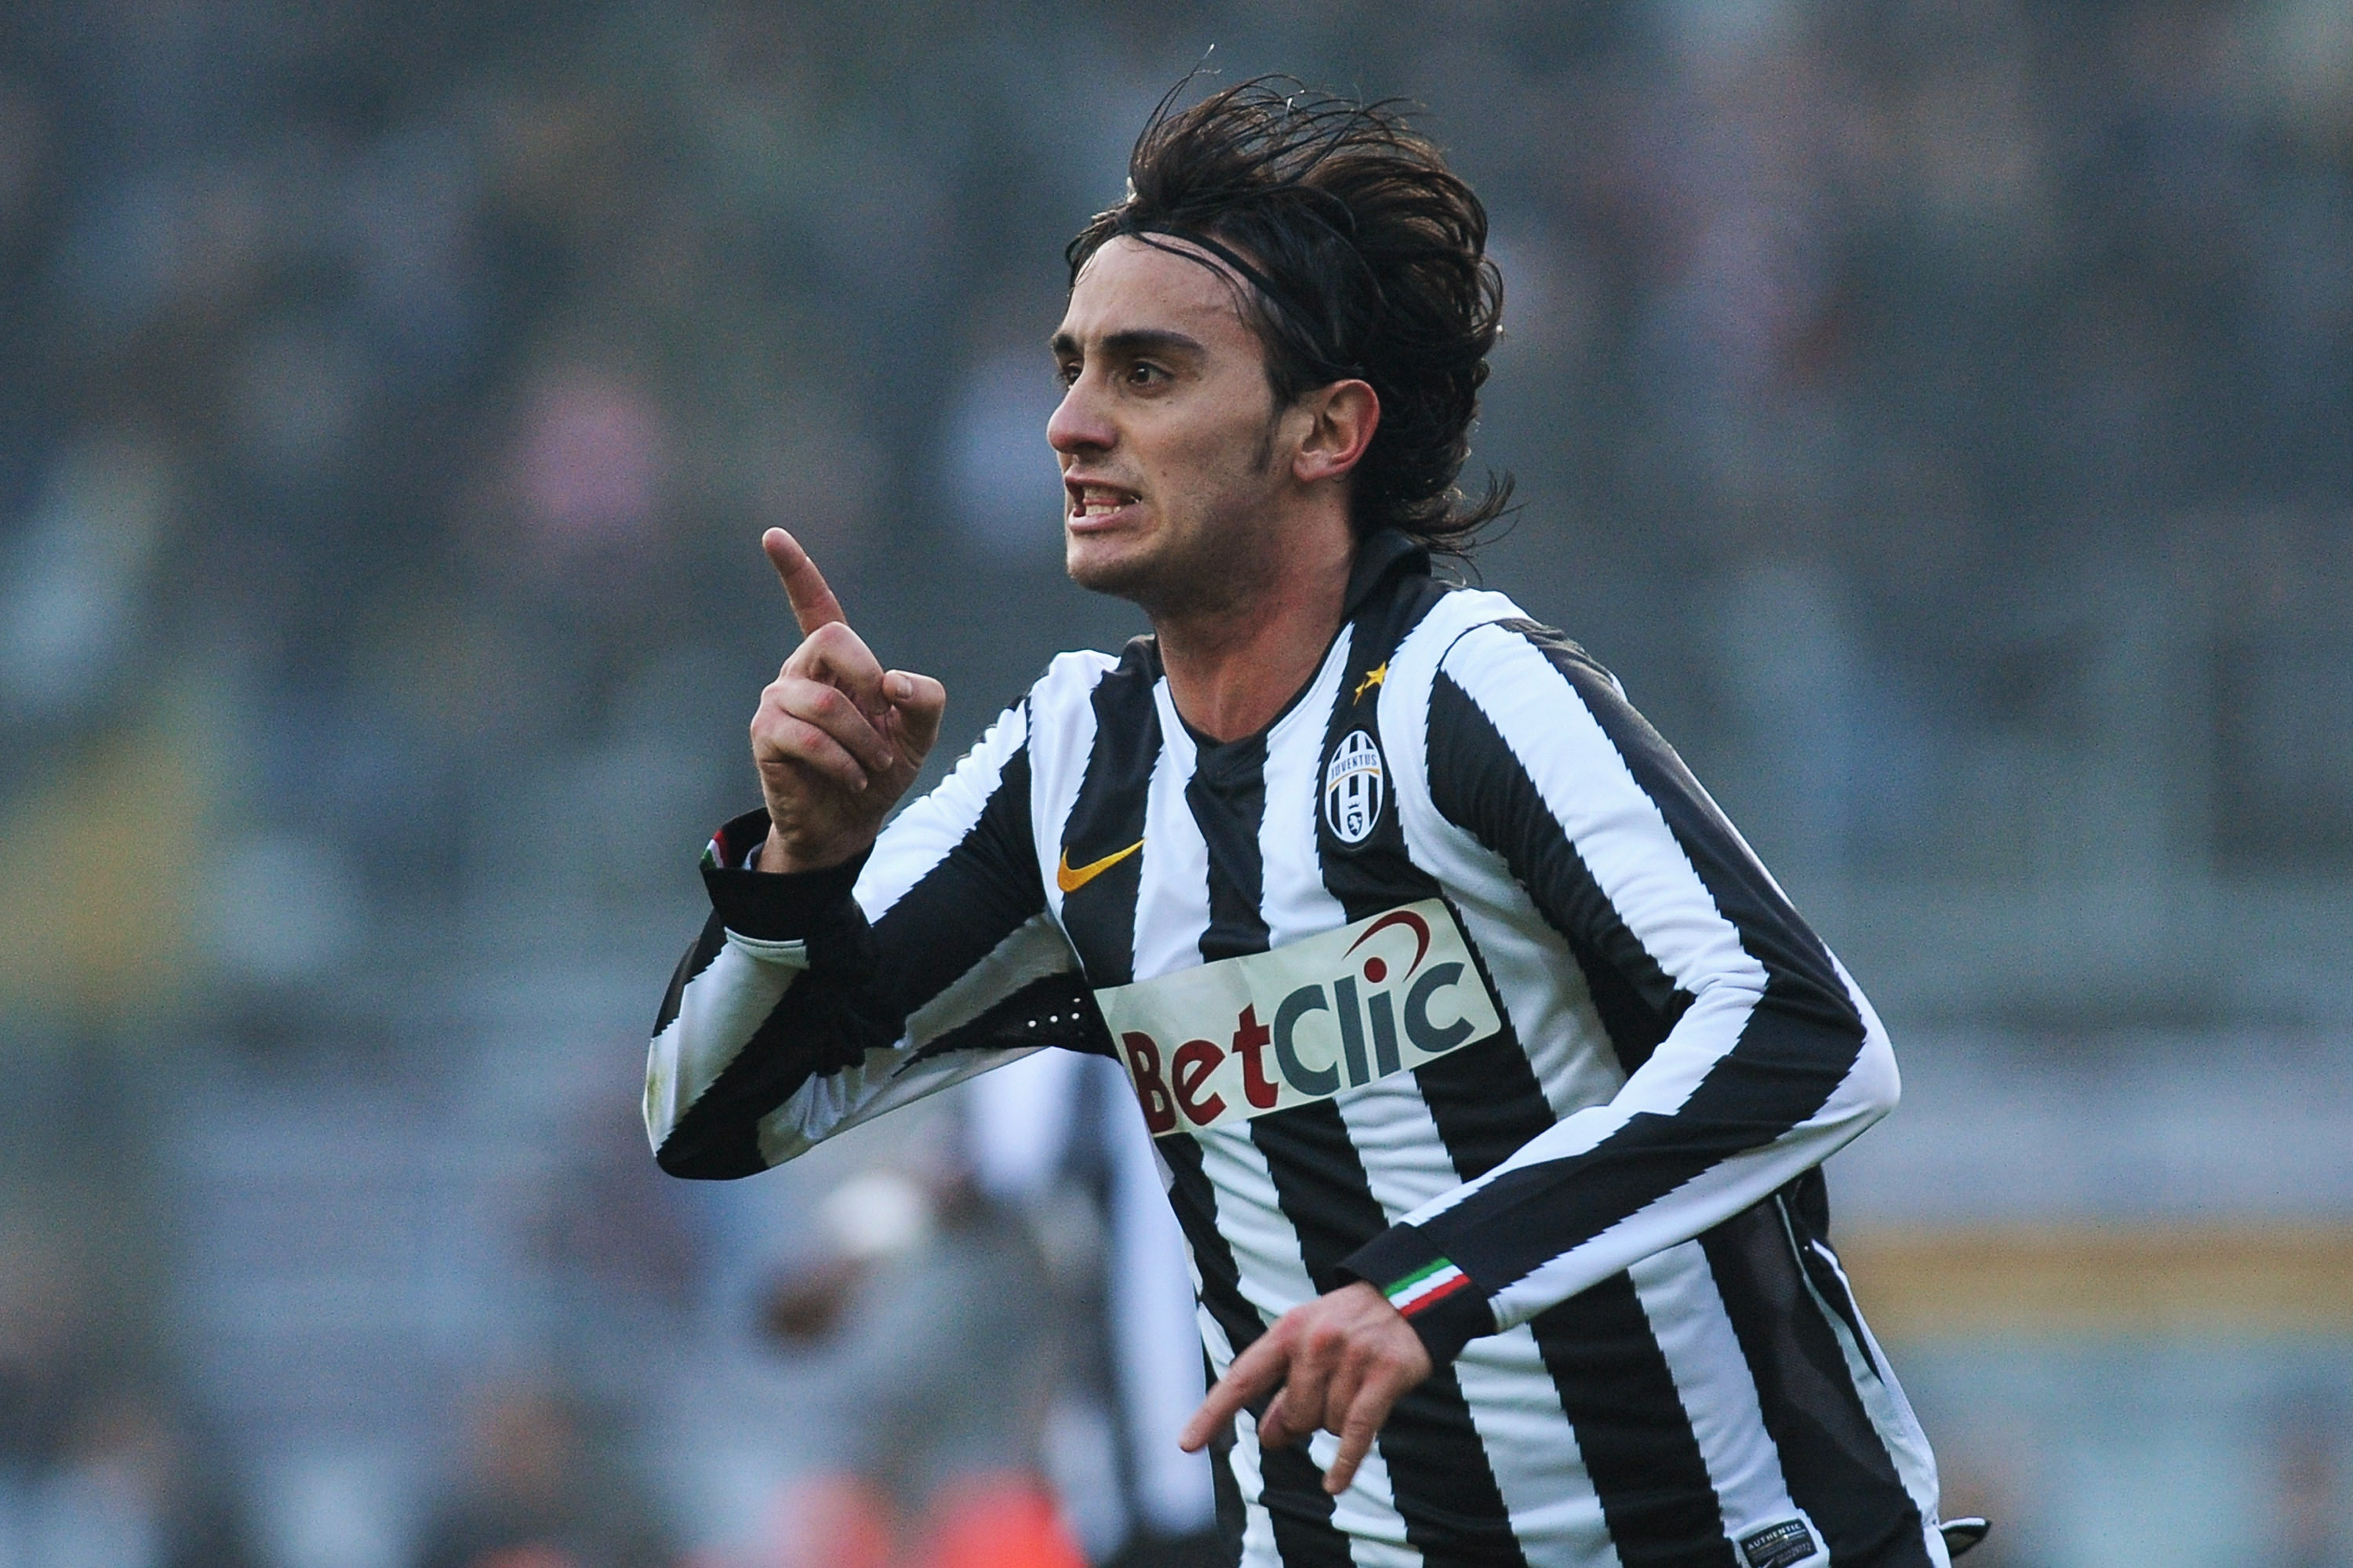 TURIN, ITALY - JANUARY 16:  Alberto Aquilani of Juventus FC celebrates after scoring a goal during the Serie A match between Juventus FC and AS Bari at Olimpico Stadium on January 16, 2011 in Turin, Italy.  (Photo by Valerio Pennicino/Getty Images)